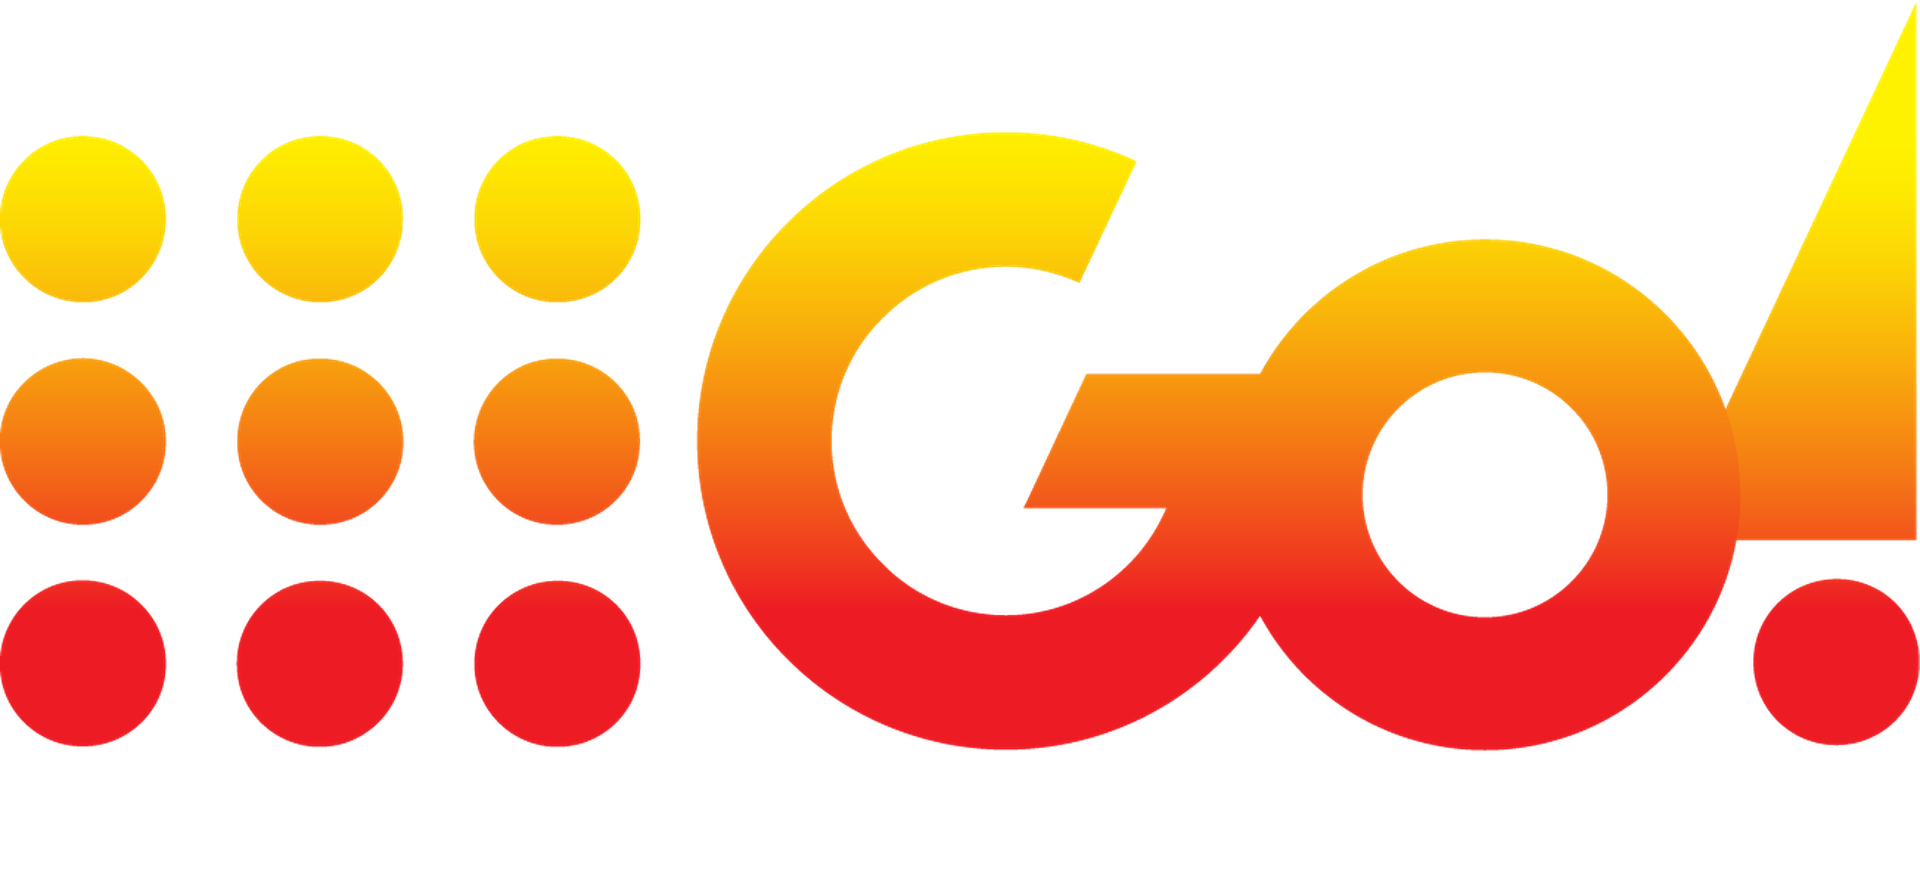 9go live stream family tv kids shows watch free online